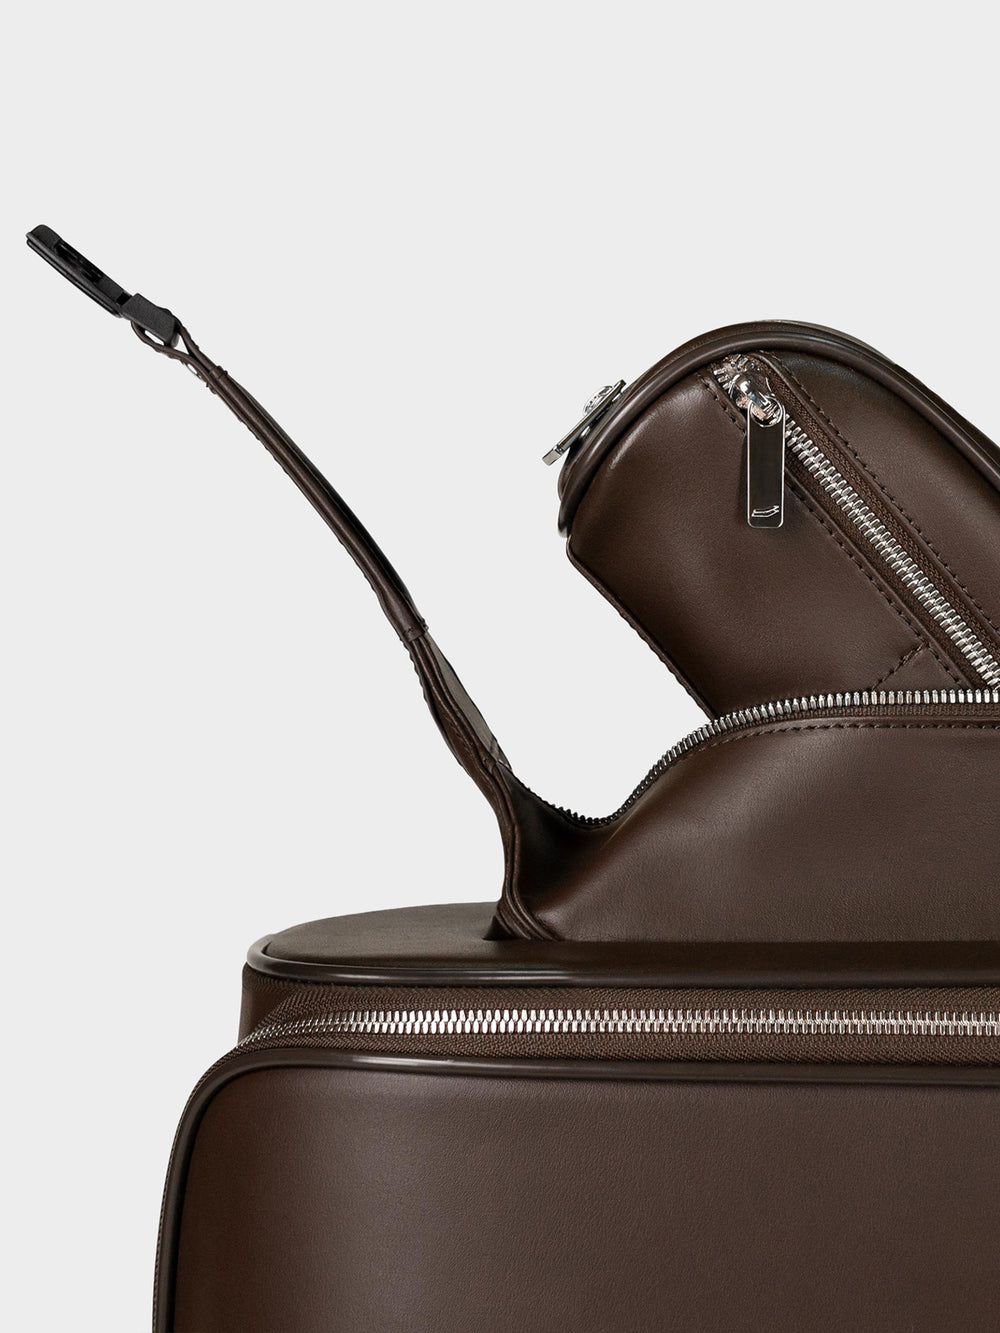 f38 carry on luggage with toiletries pocket in brown leather braunes leder